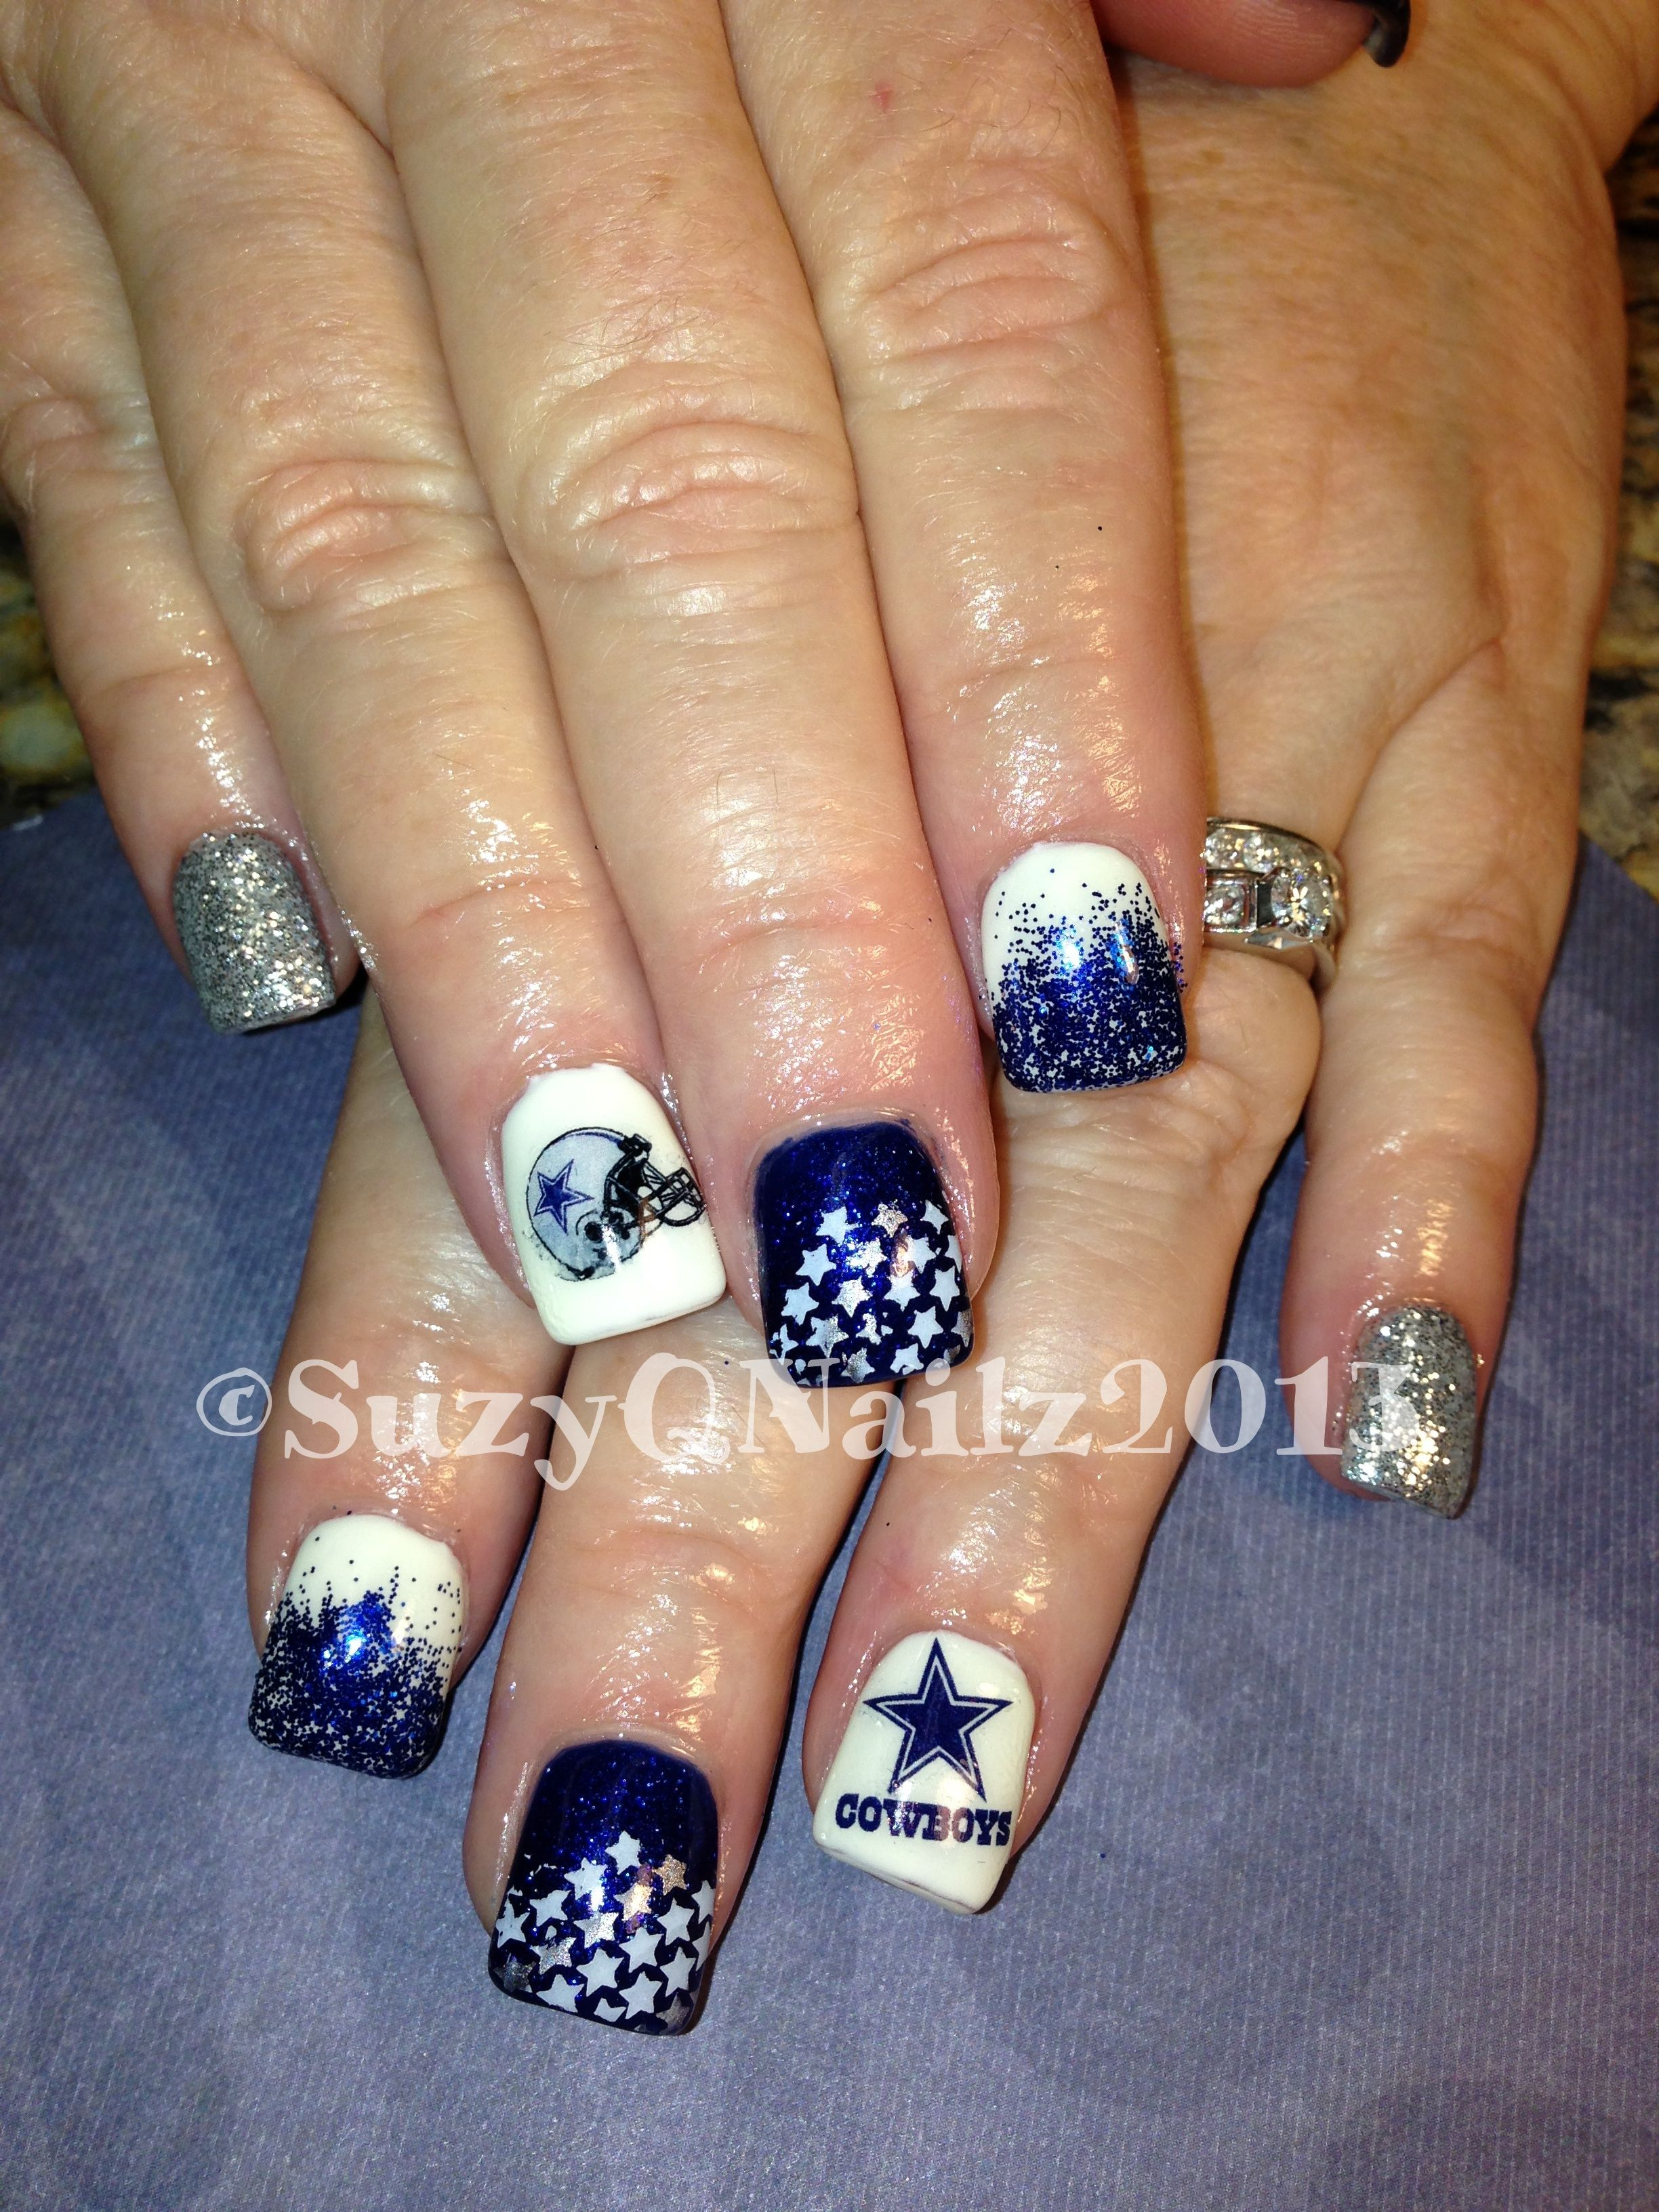 Dallas Cowboys Nails | SuzyQ Nailz | Pinterest | Dallas cowboys ...